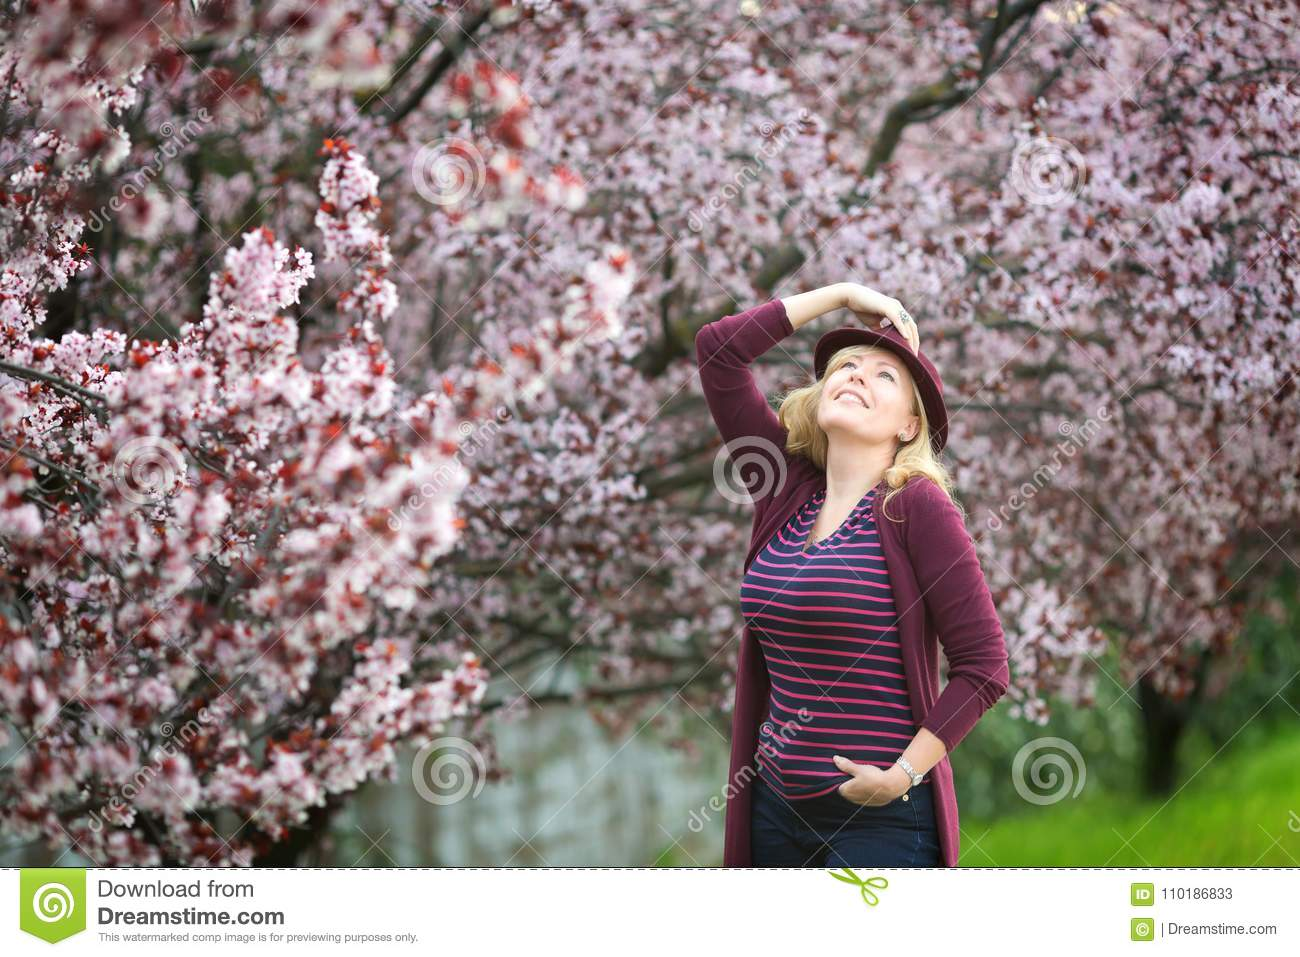 Caucasian blond woman with long hair in purple fedora hat near blossoming tree